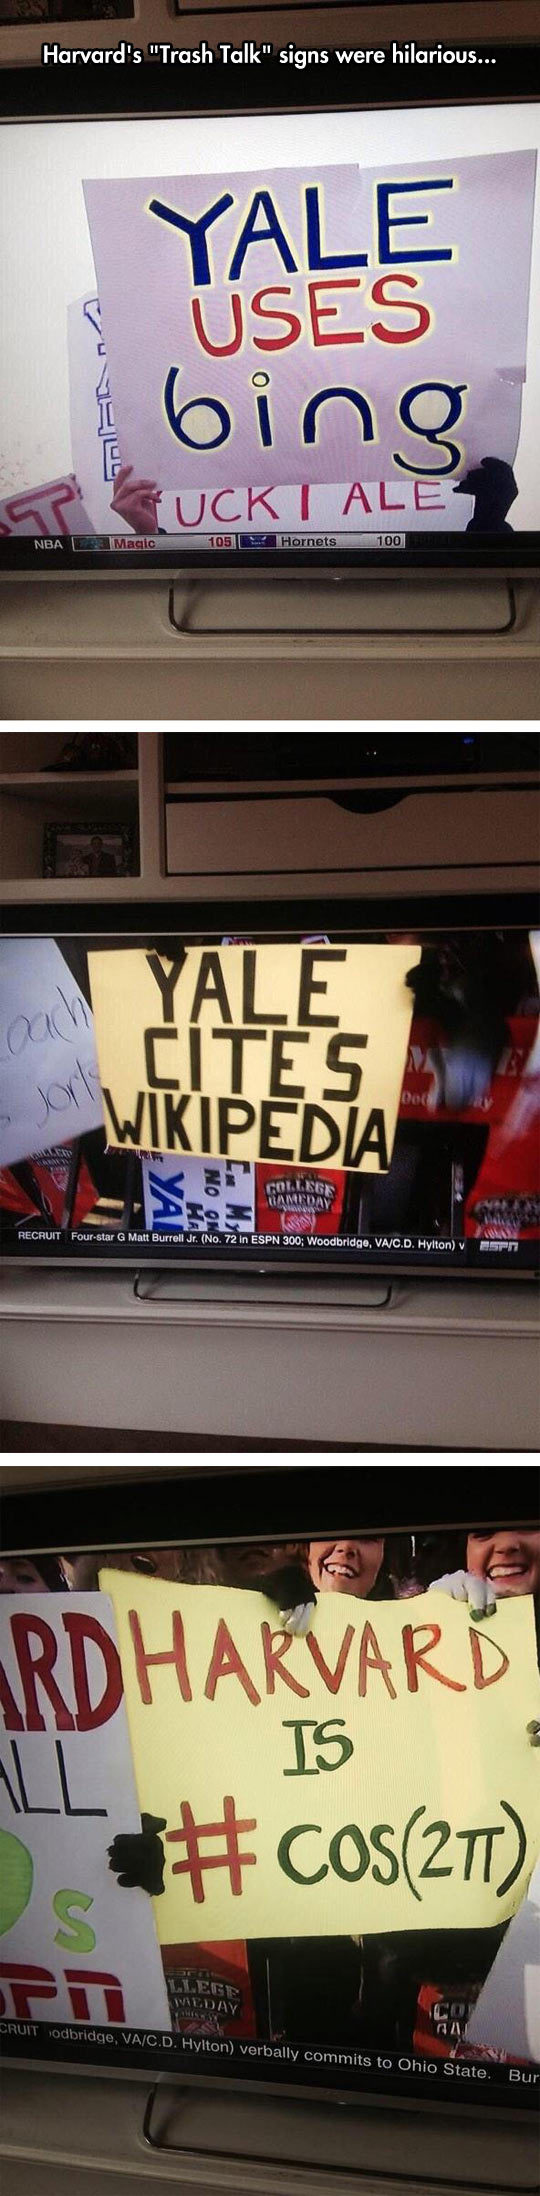 funny-Harvard-signs-against-Yale